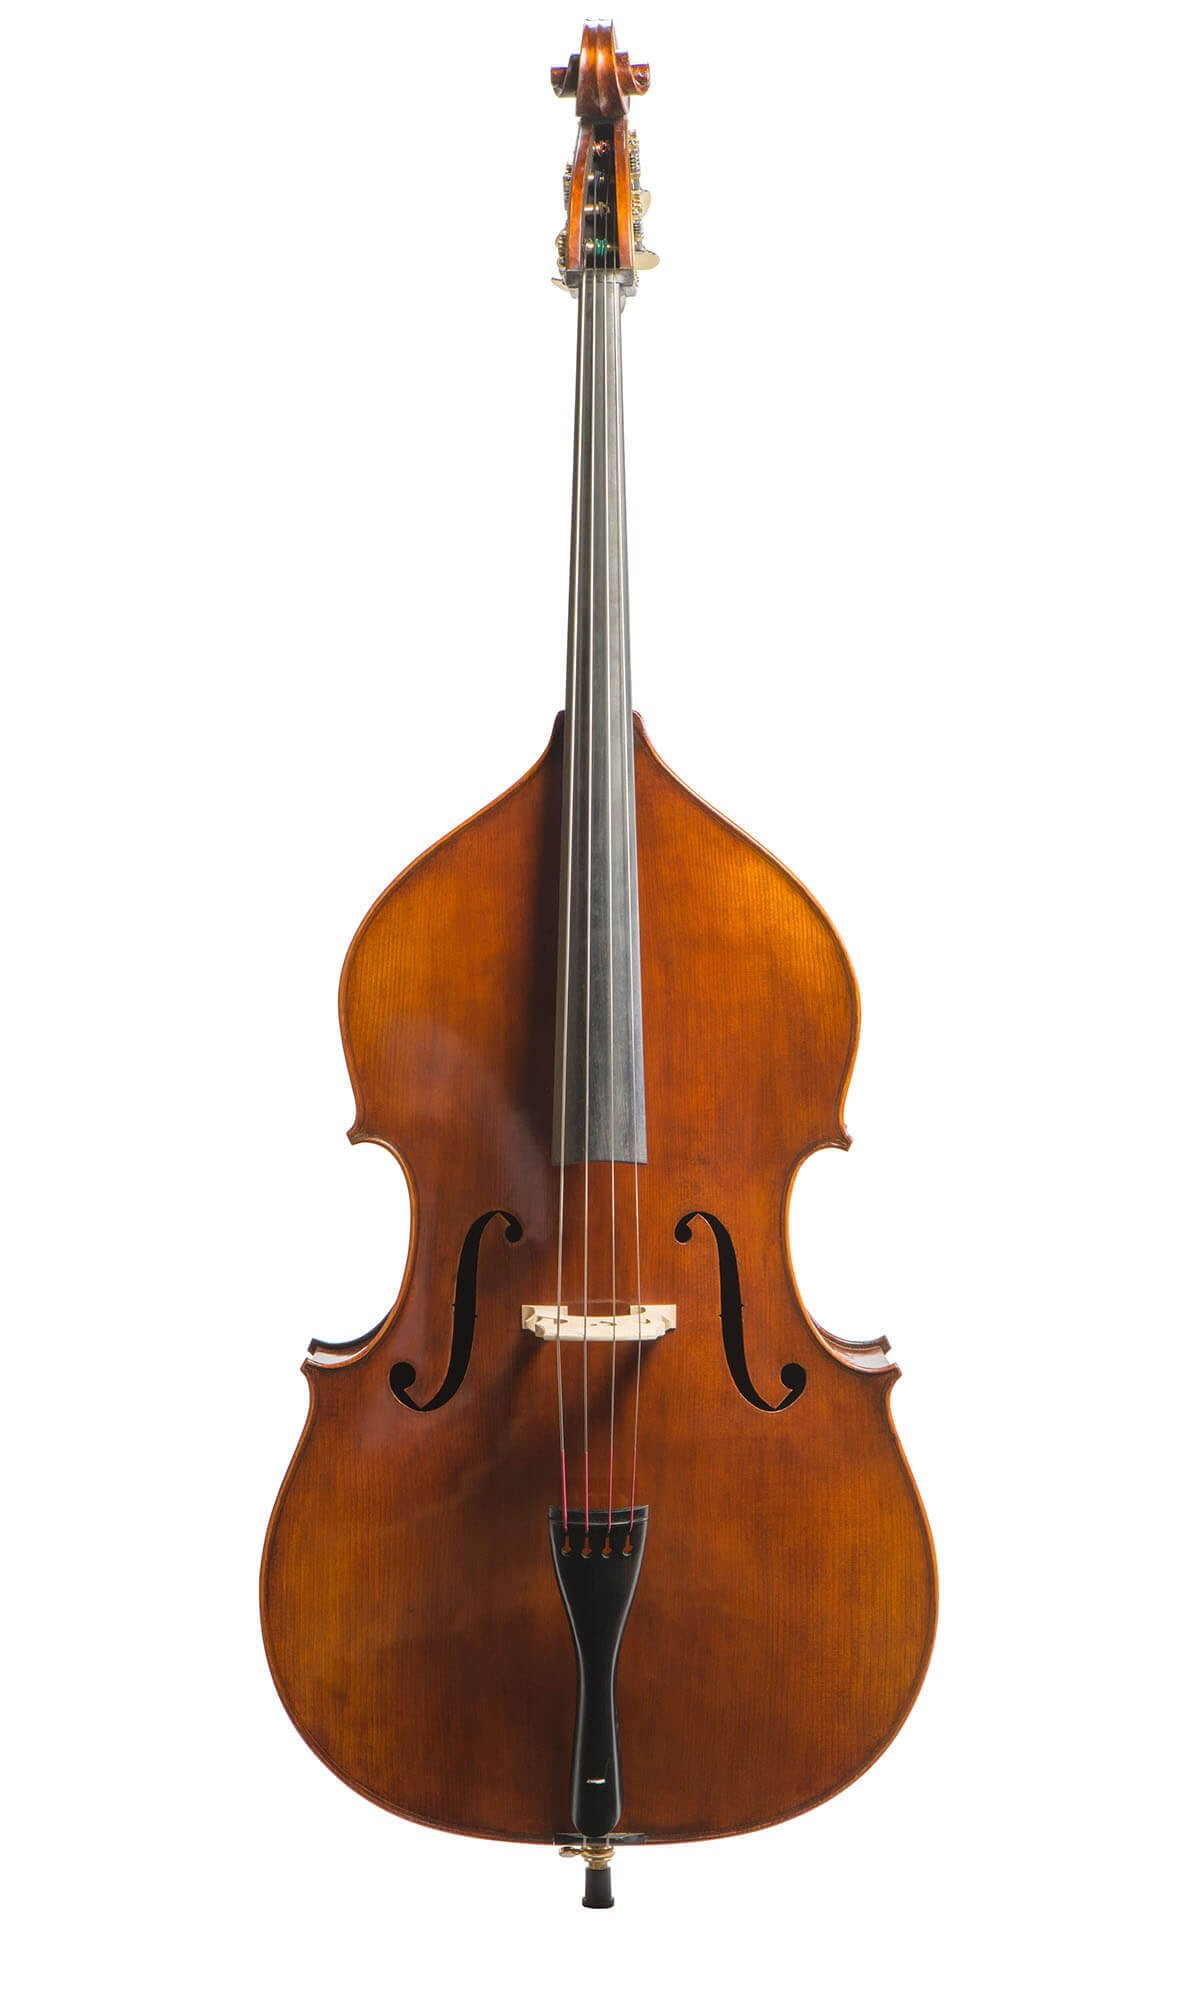 The History of the Cello